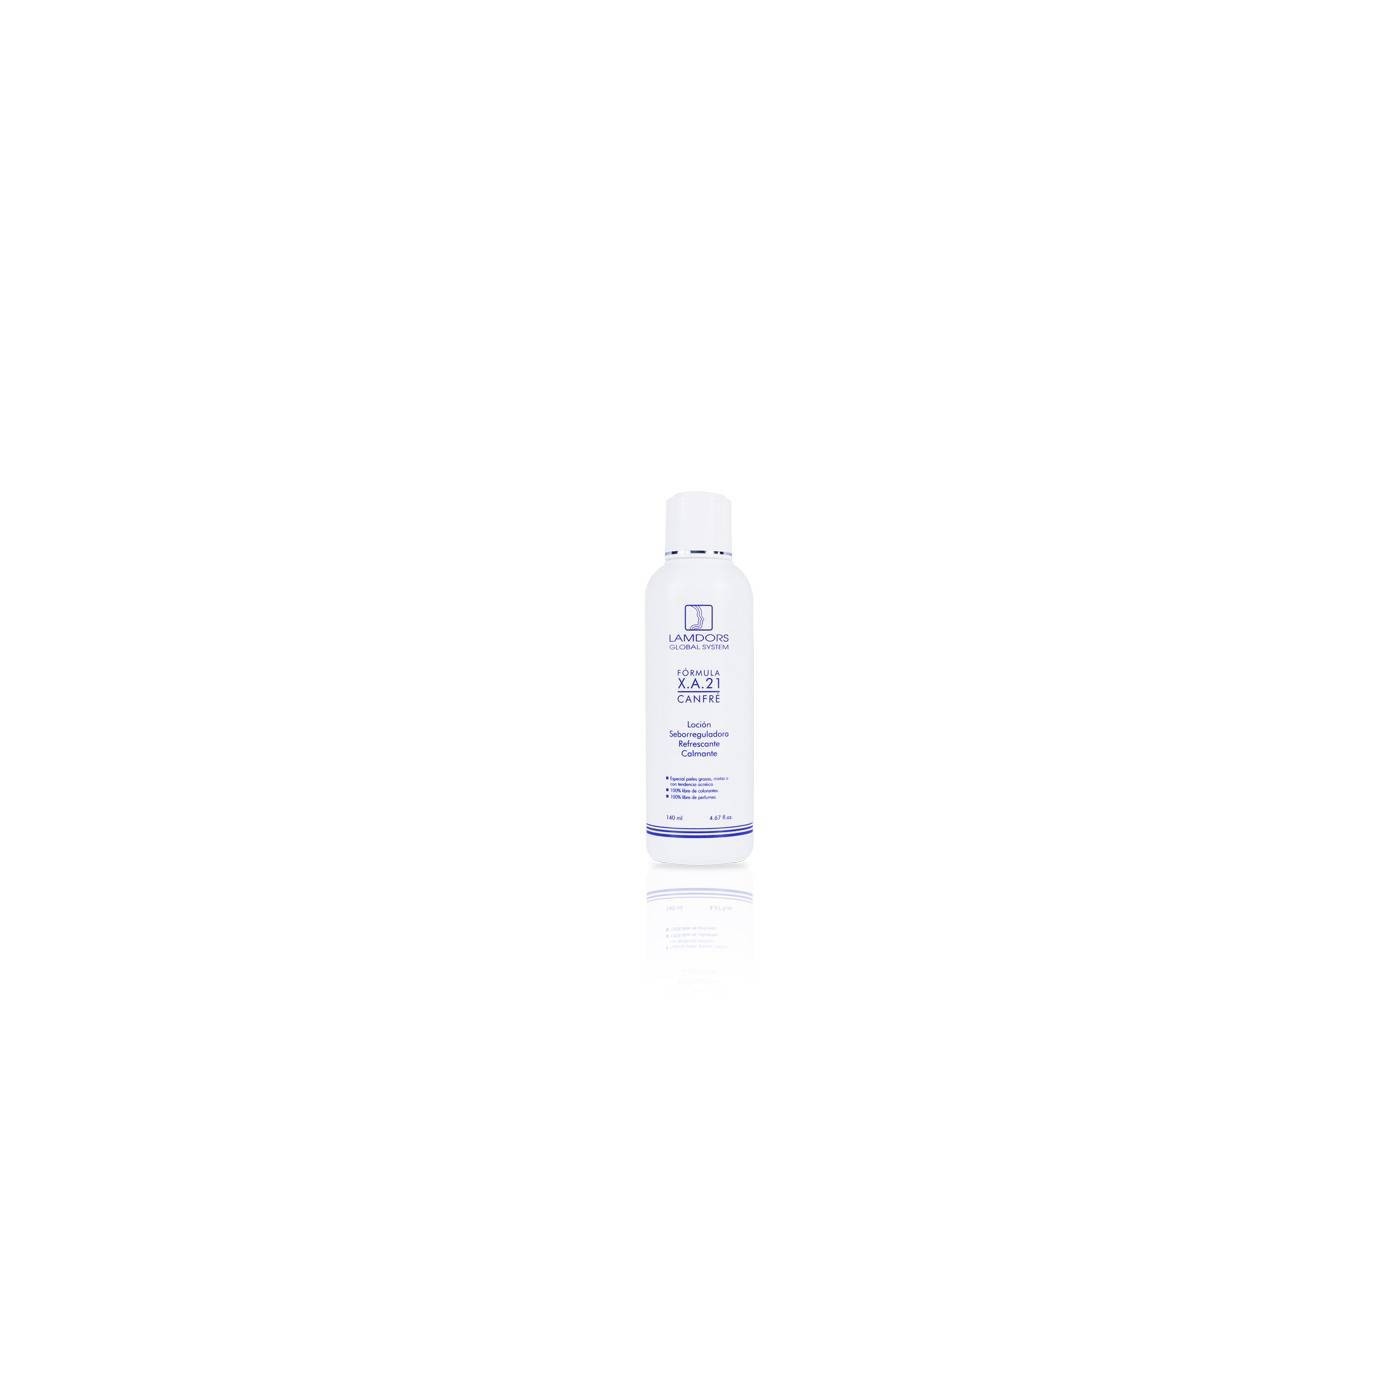 Sebum Regulator Soothing Lotion X.A.21 CANFRÉ 4.67 fl oz